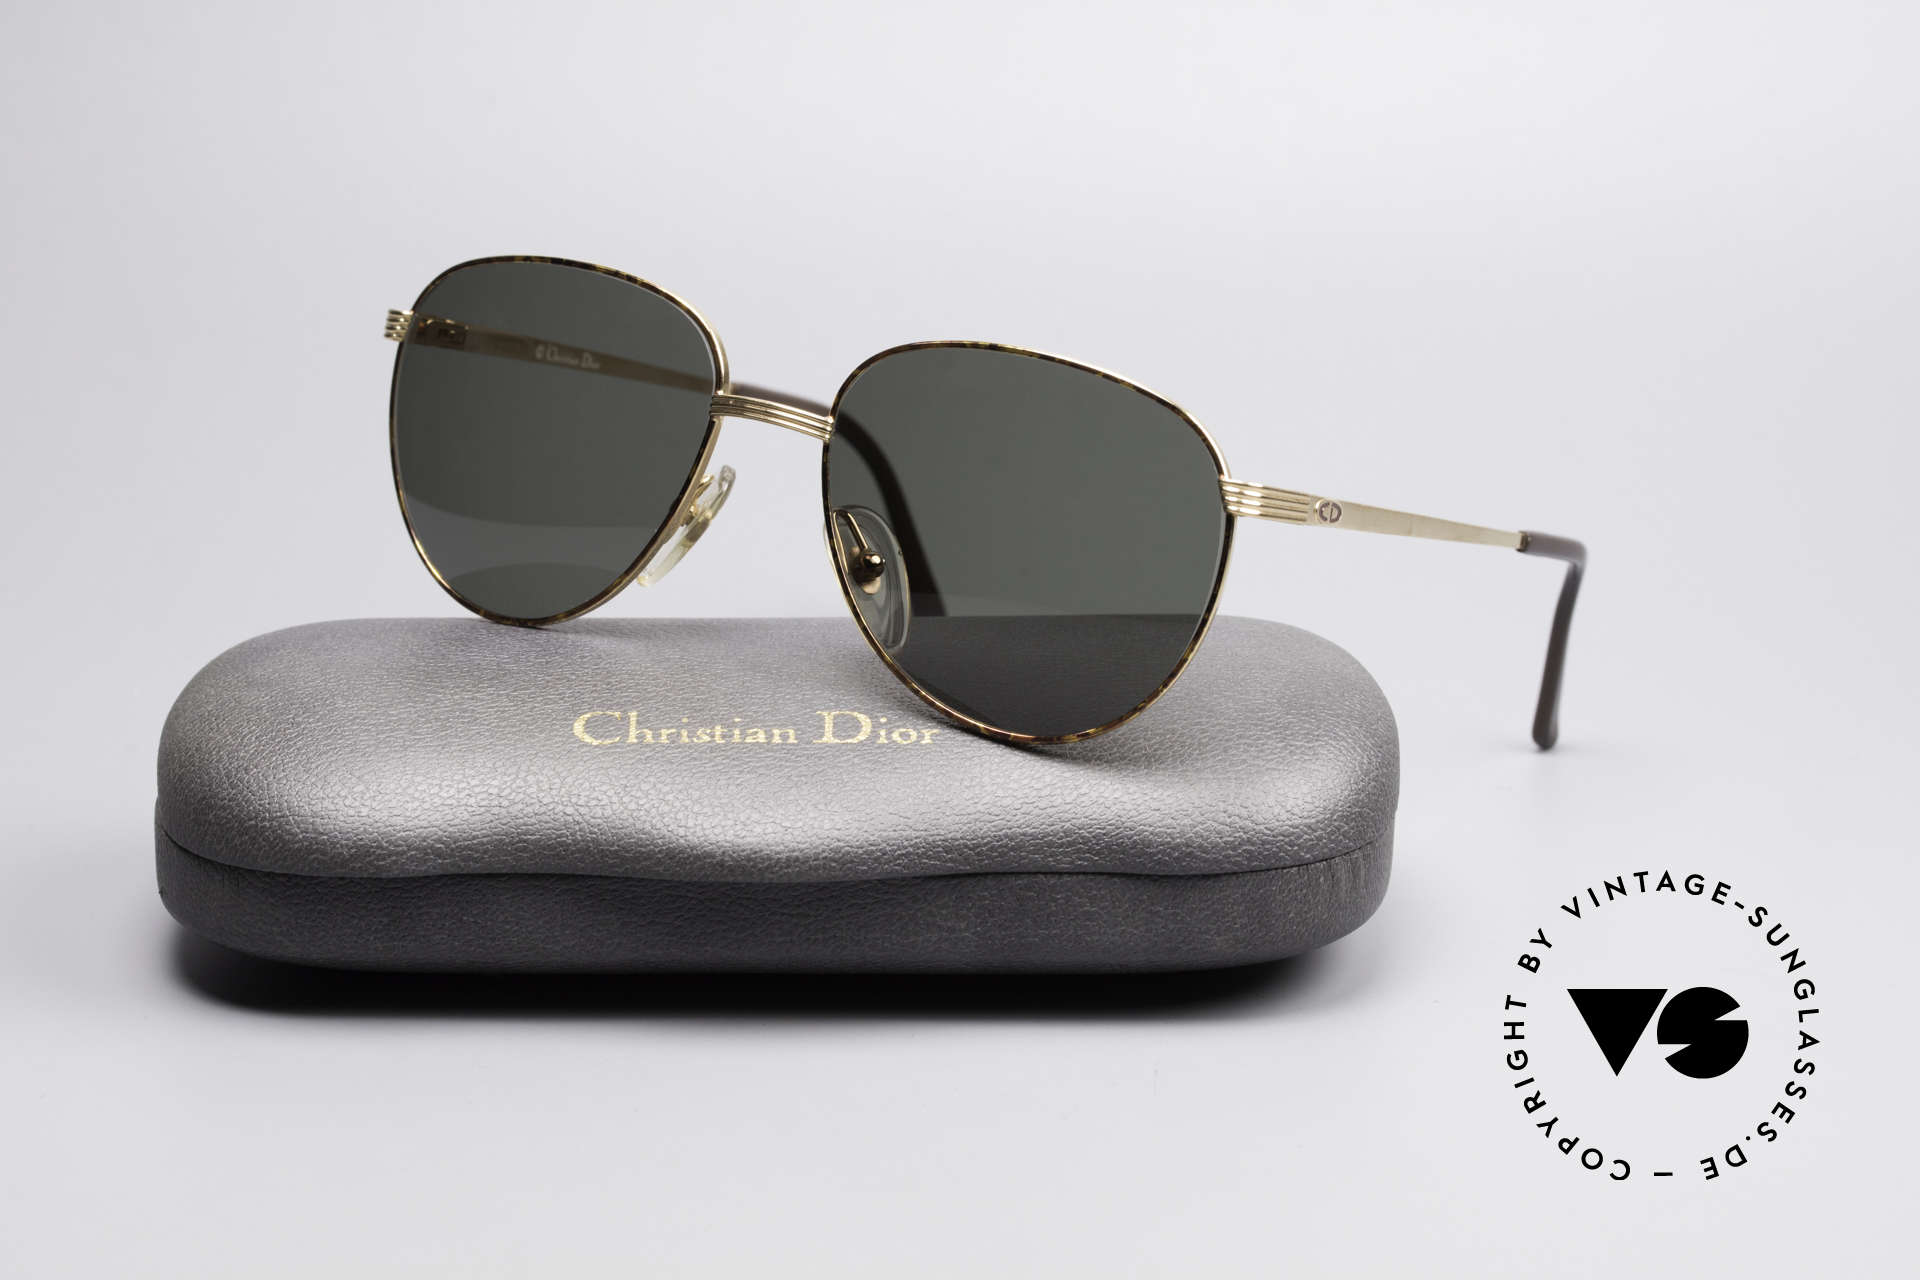 Christian Dior 2754 Round Panto Vintage Shades, dark green CR39 sun lenses for 100% UV protection, Made for Men and Women